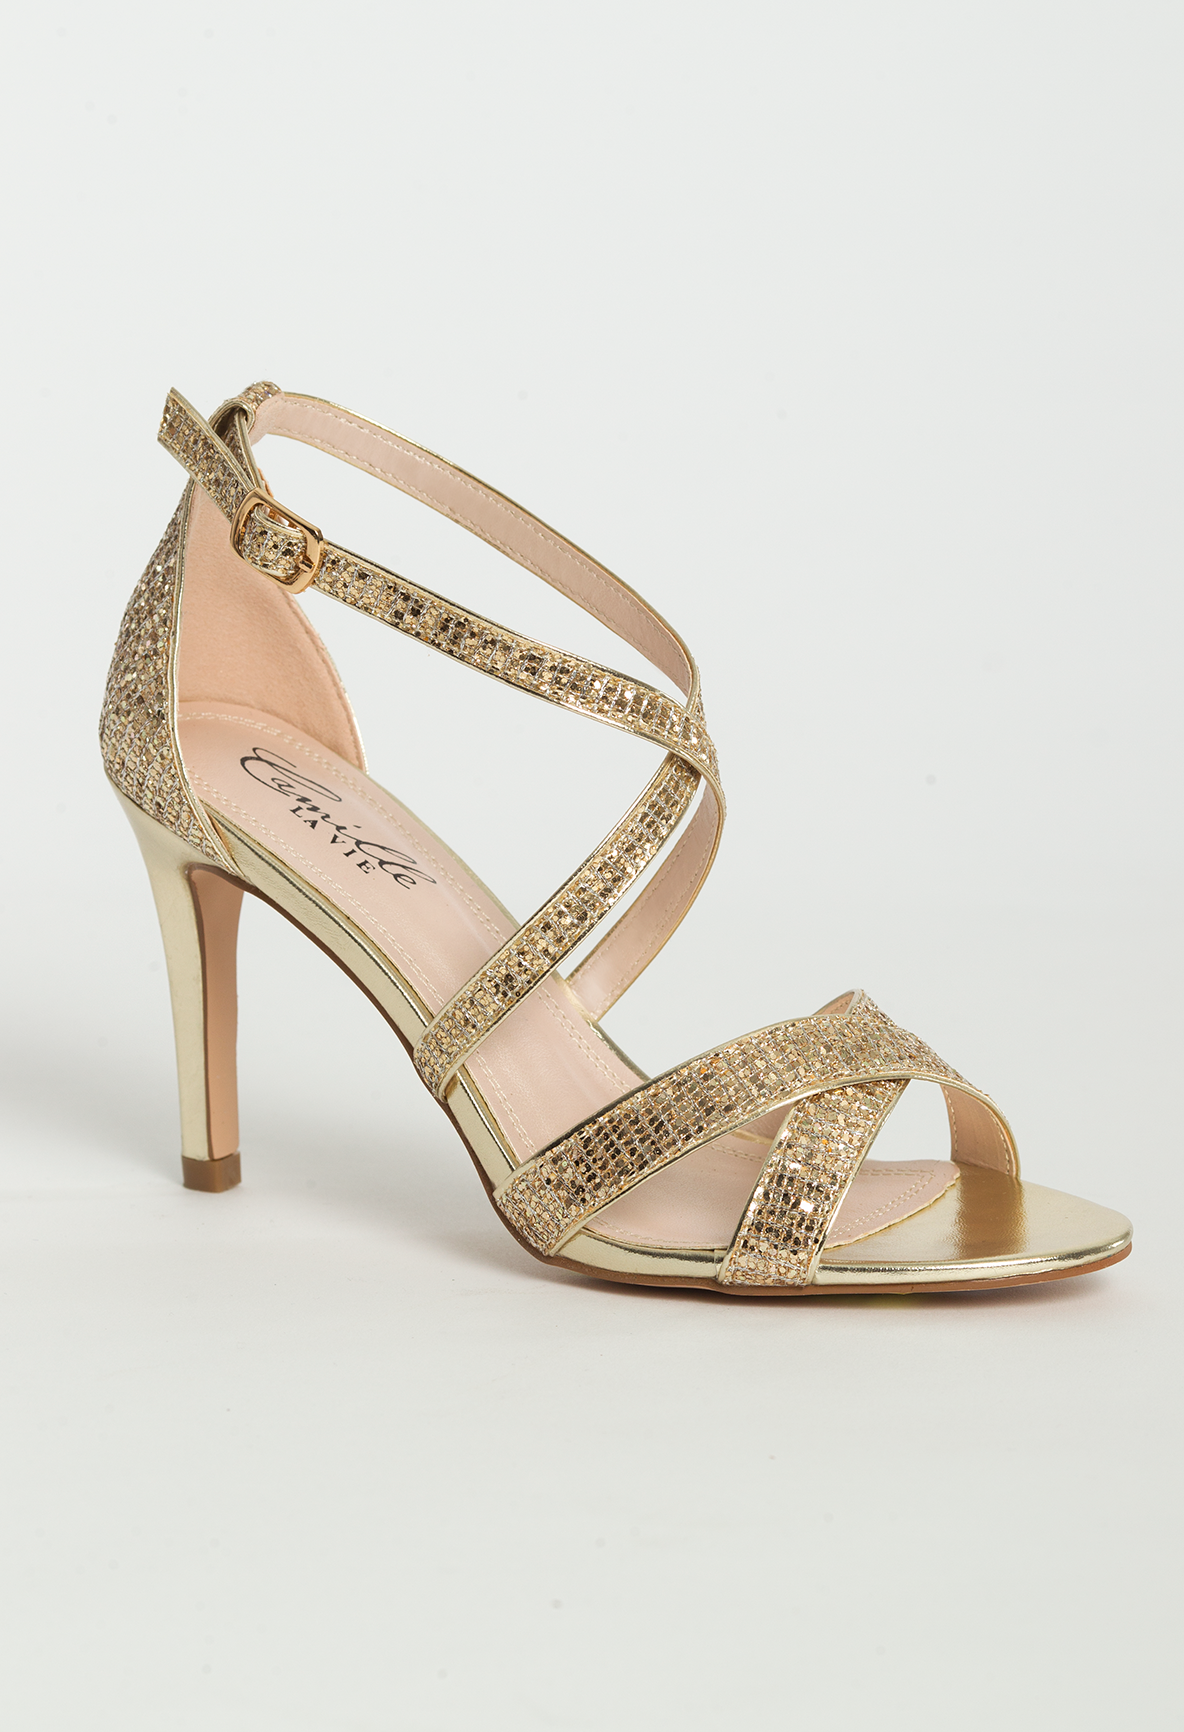 Mid Heel Sandal Features 3 Heel Color Coordinating Heel Adjustable Ankle Strap Padded Insole Mediu Sandals Heels Mid Heel Sandals High Heel Sandals